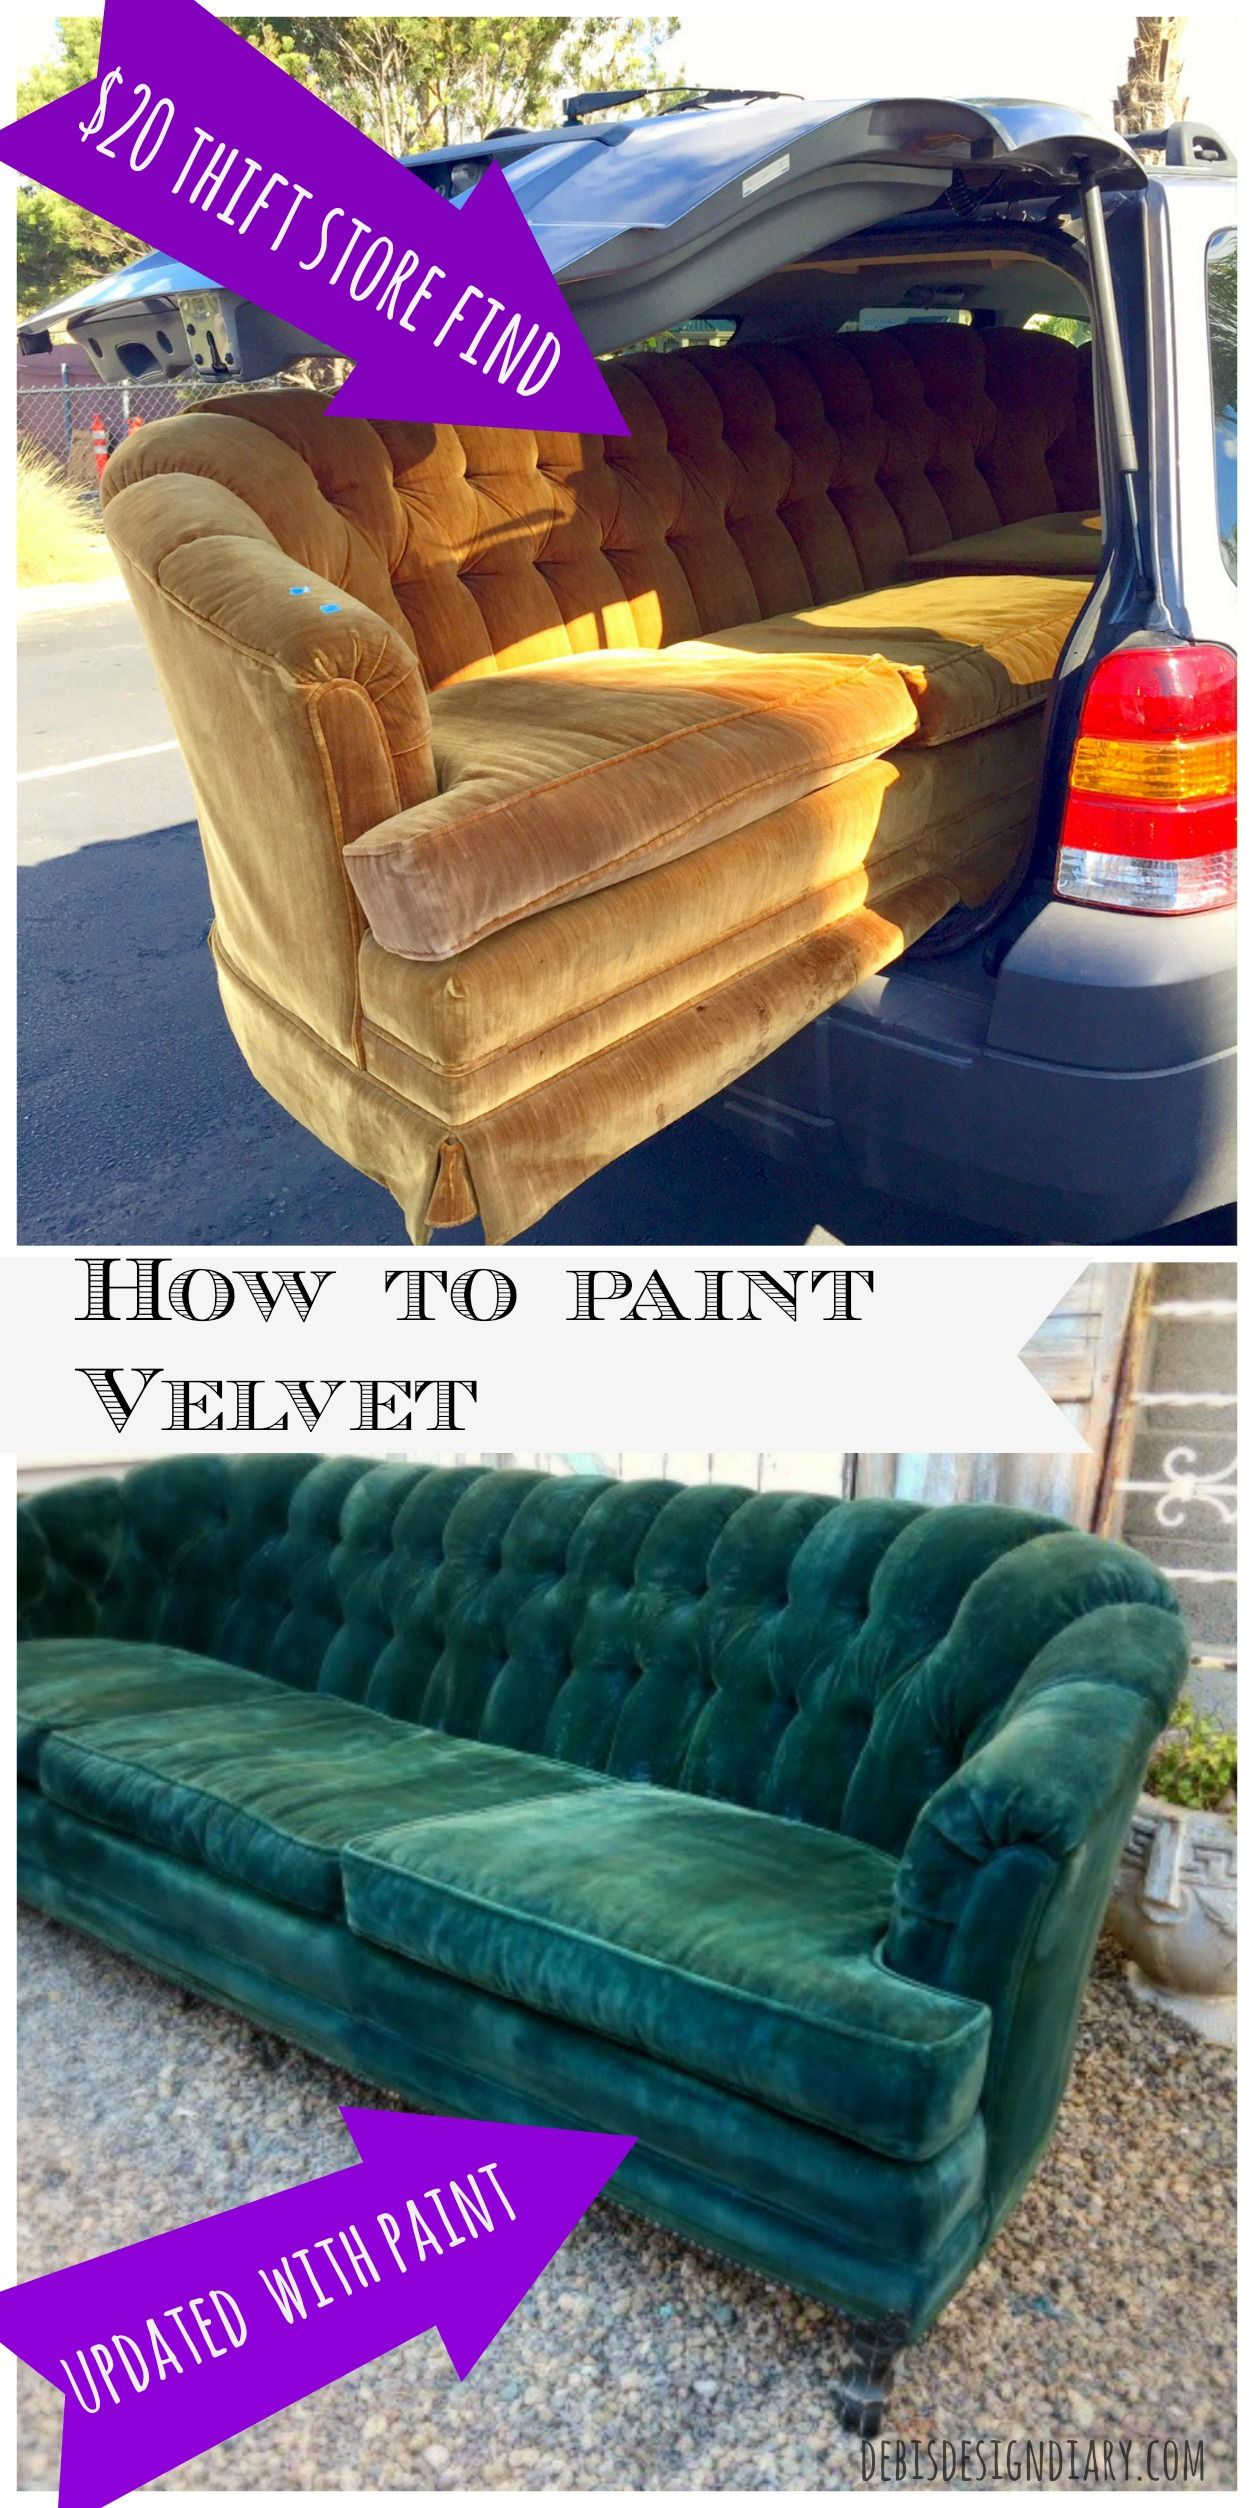 How to paint upholstery, keep the soft texture of the fabric, even velvet! #velvetupholsteryfabric